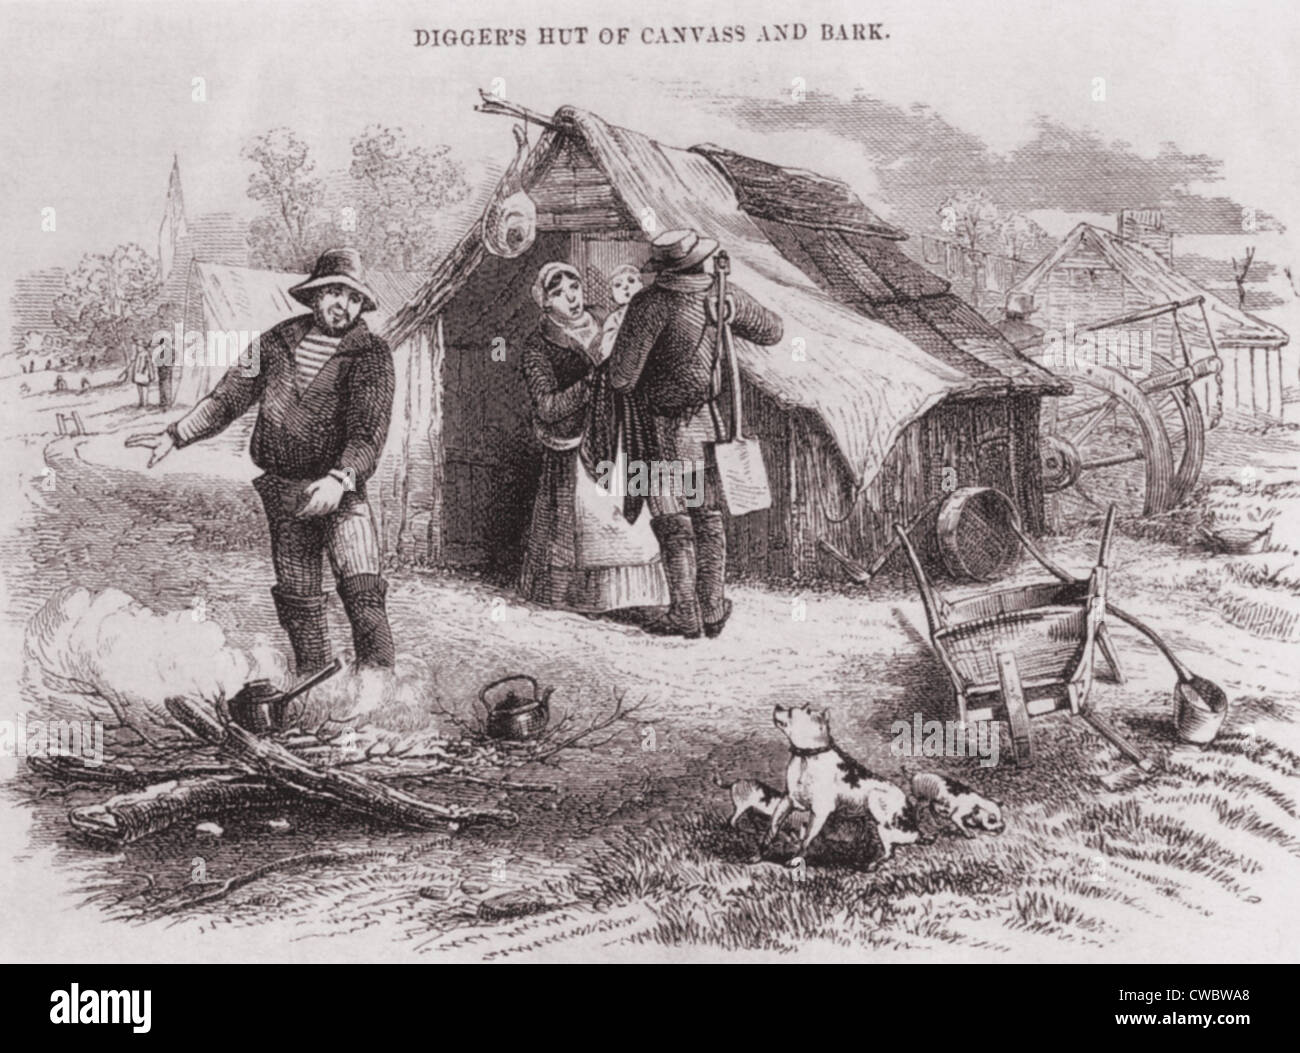 Gold diggers hut of canvas and bark in the Australian gold fields in the 1850s.   The Australian  population of - Stock Image